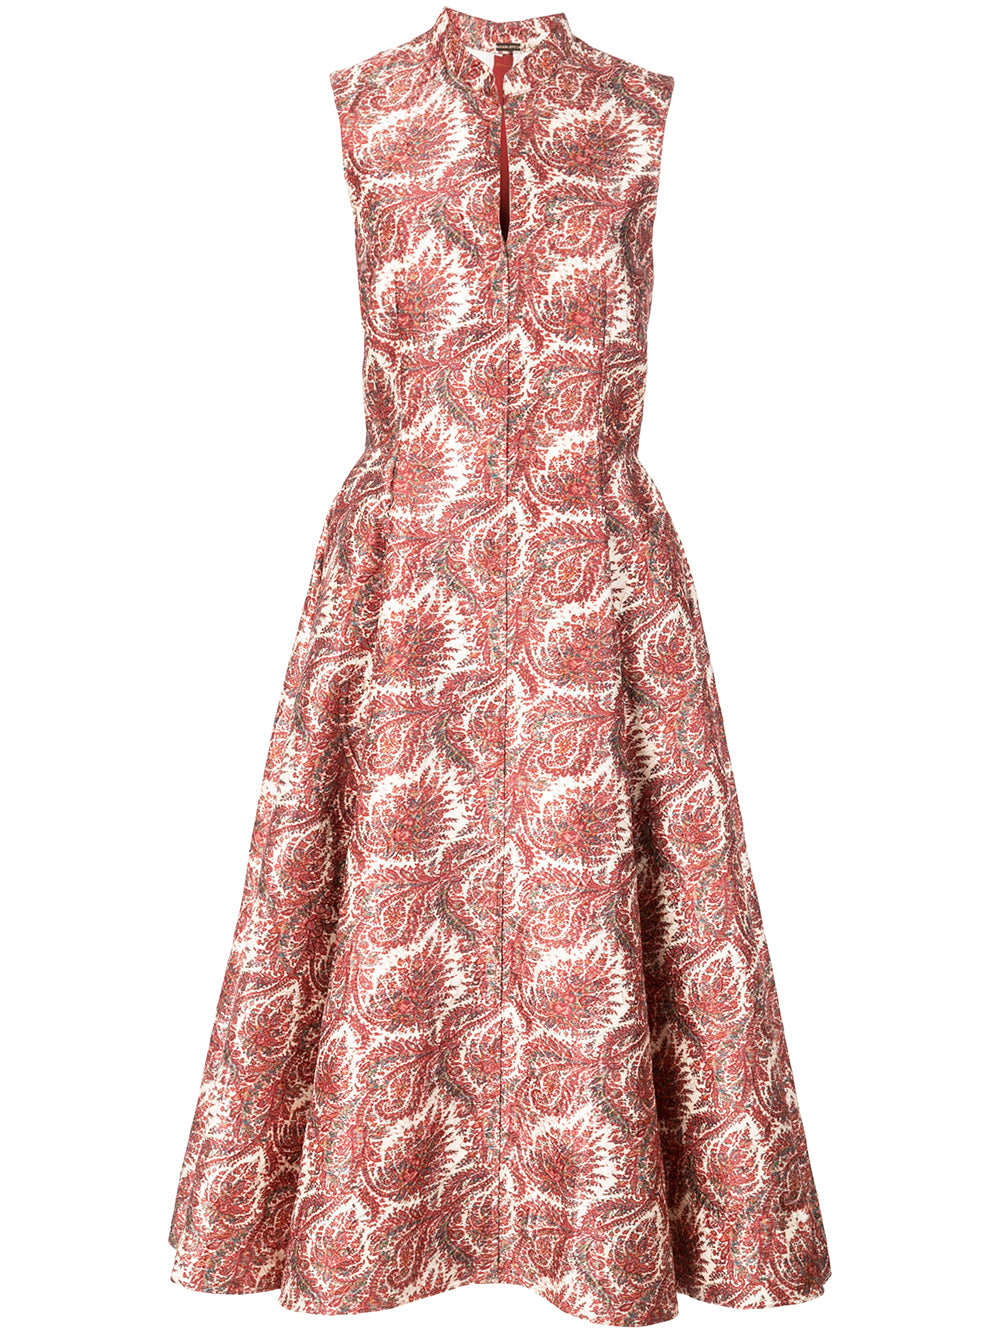 DRESS IN JACQUARD